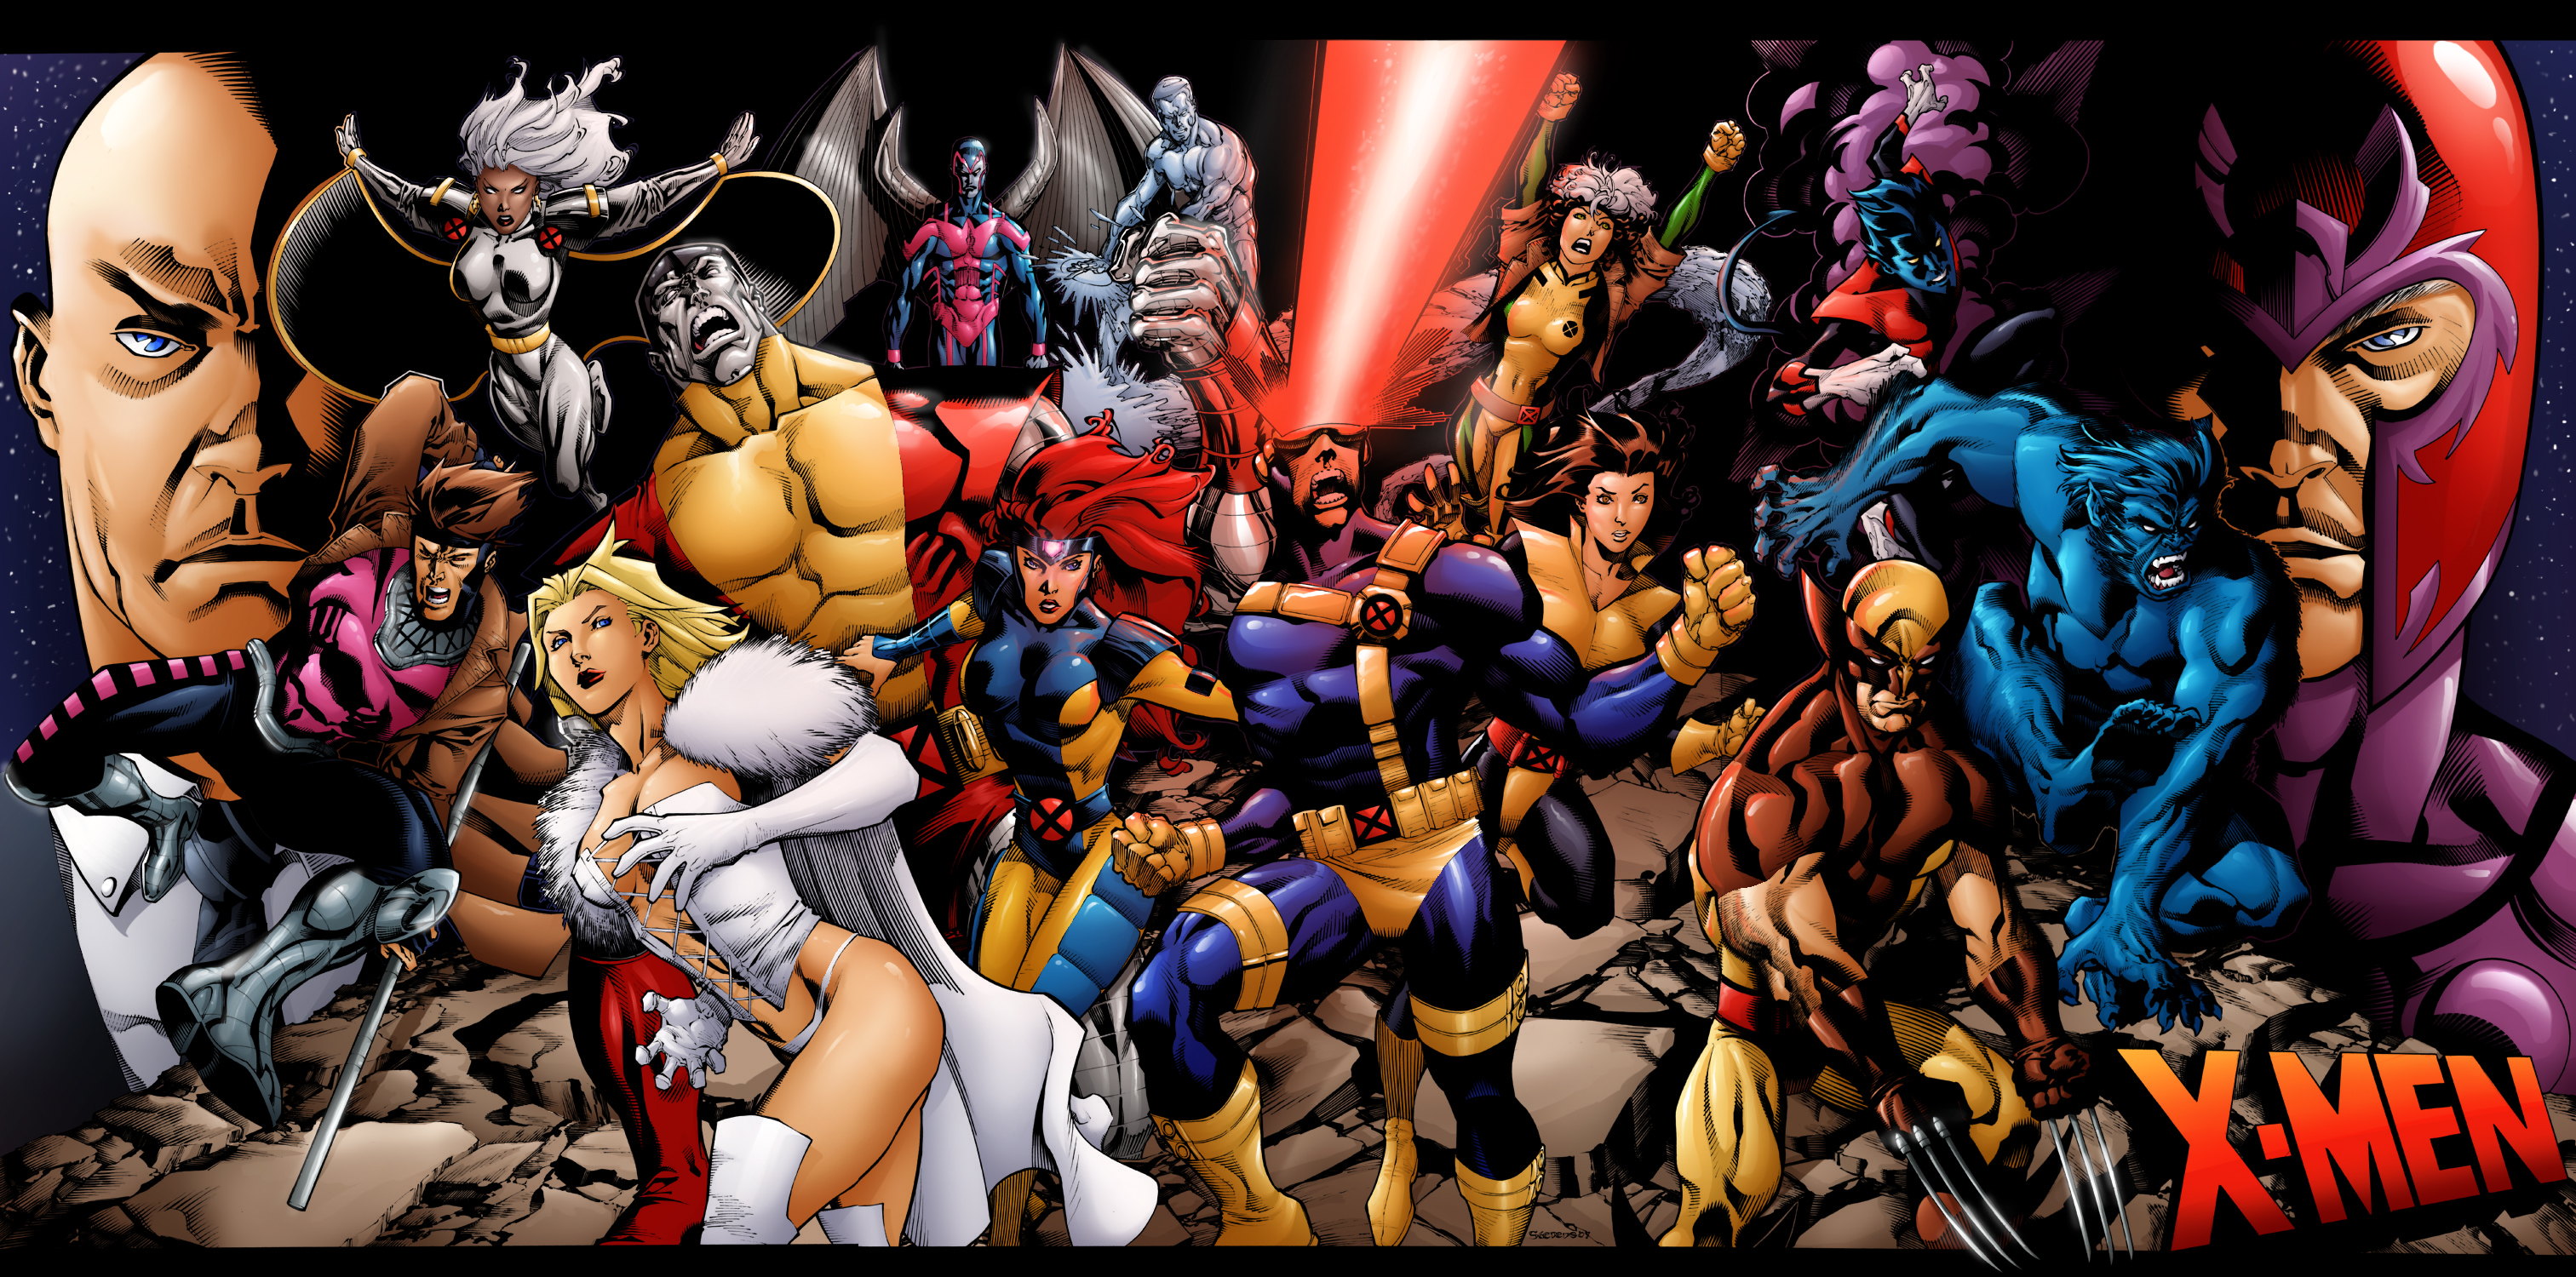 x_men_team_pin_up_by_rkw0021